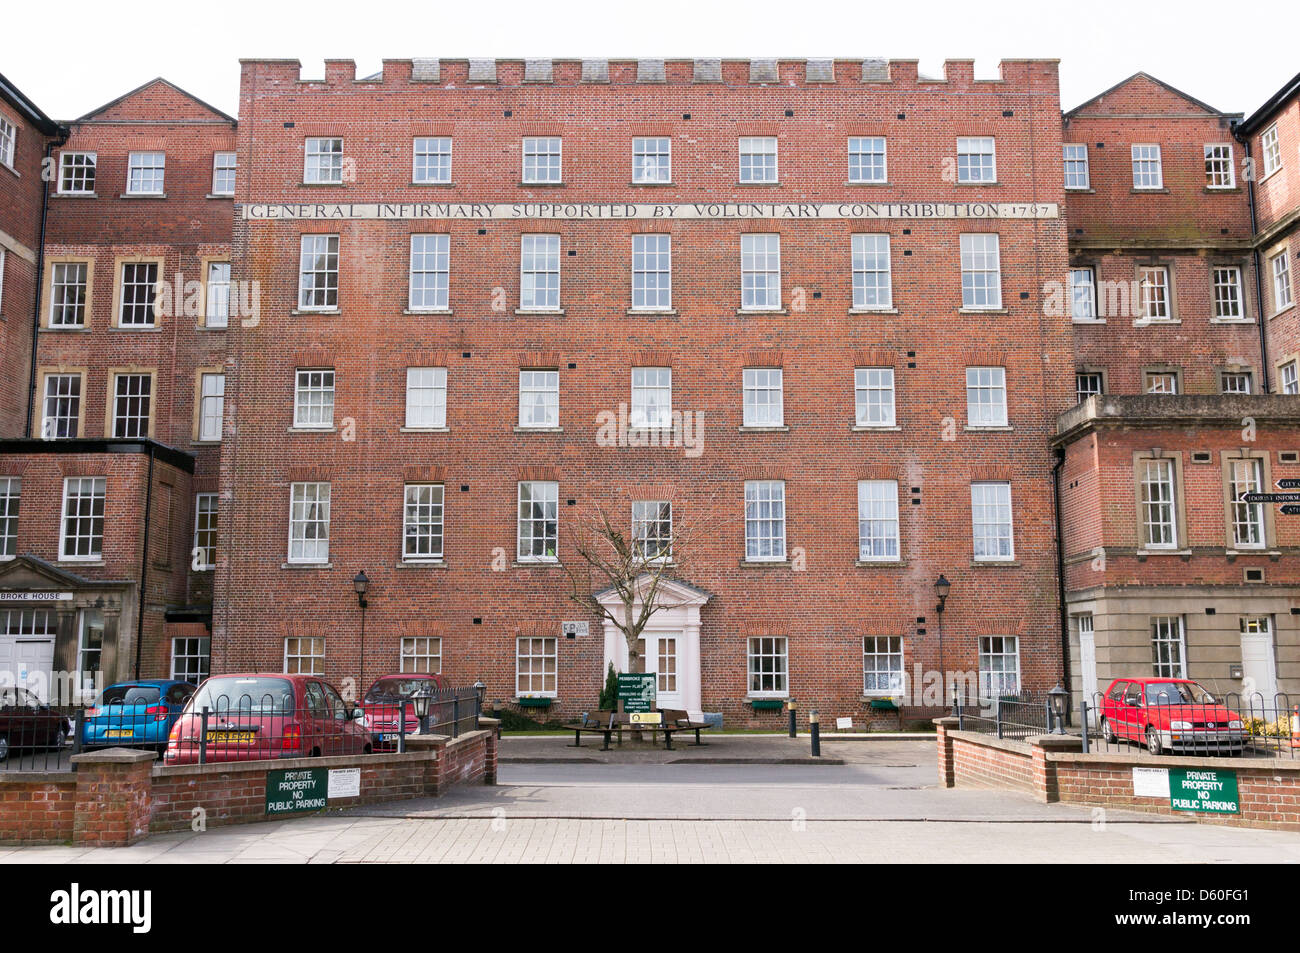 Tall Brick Built Apartment Building Converted From The Old Salisbury  Infirmary Hospital